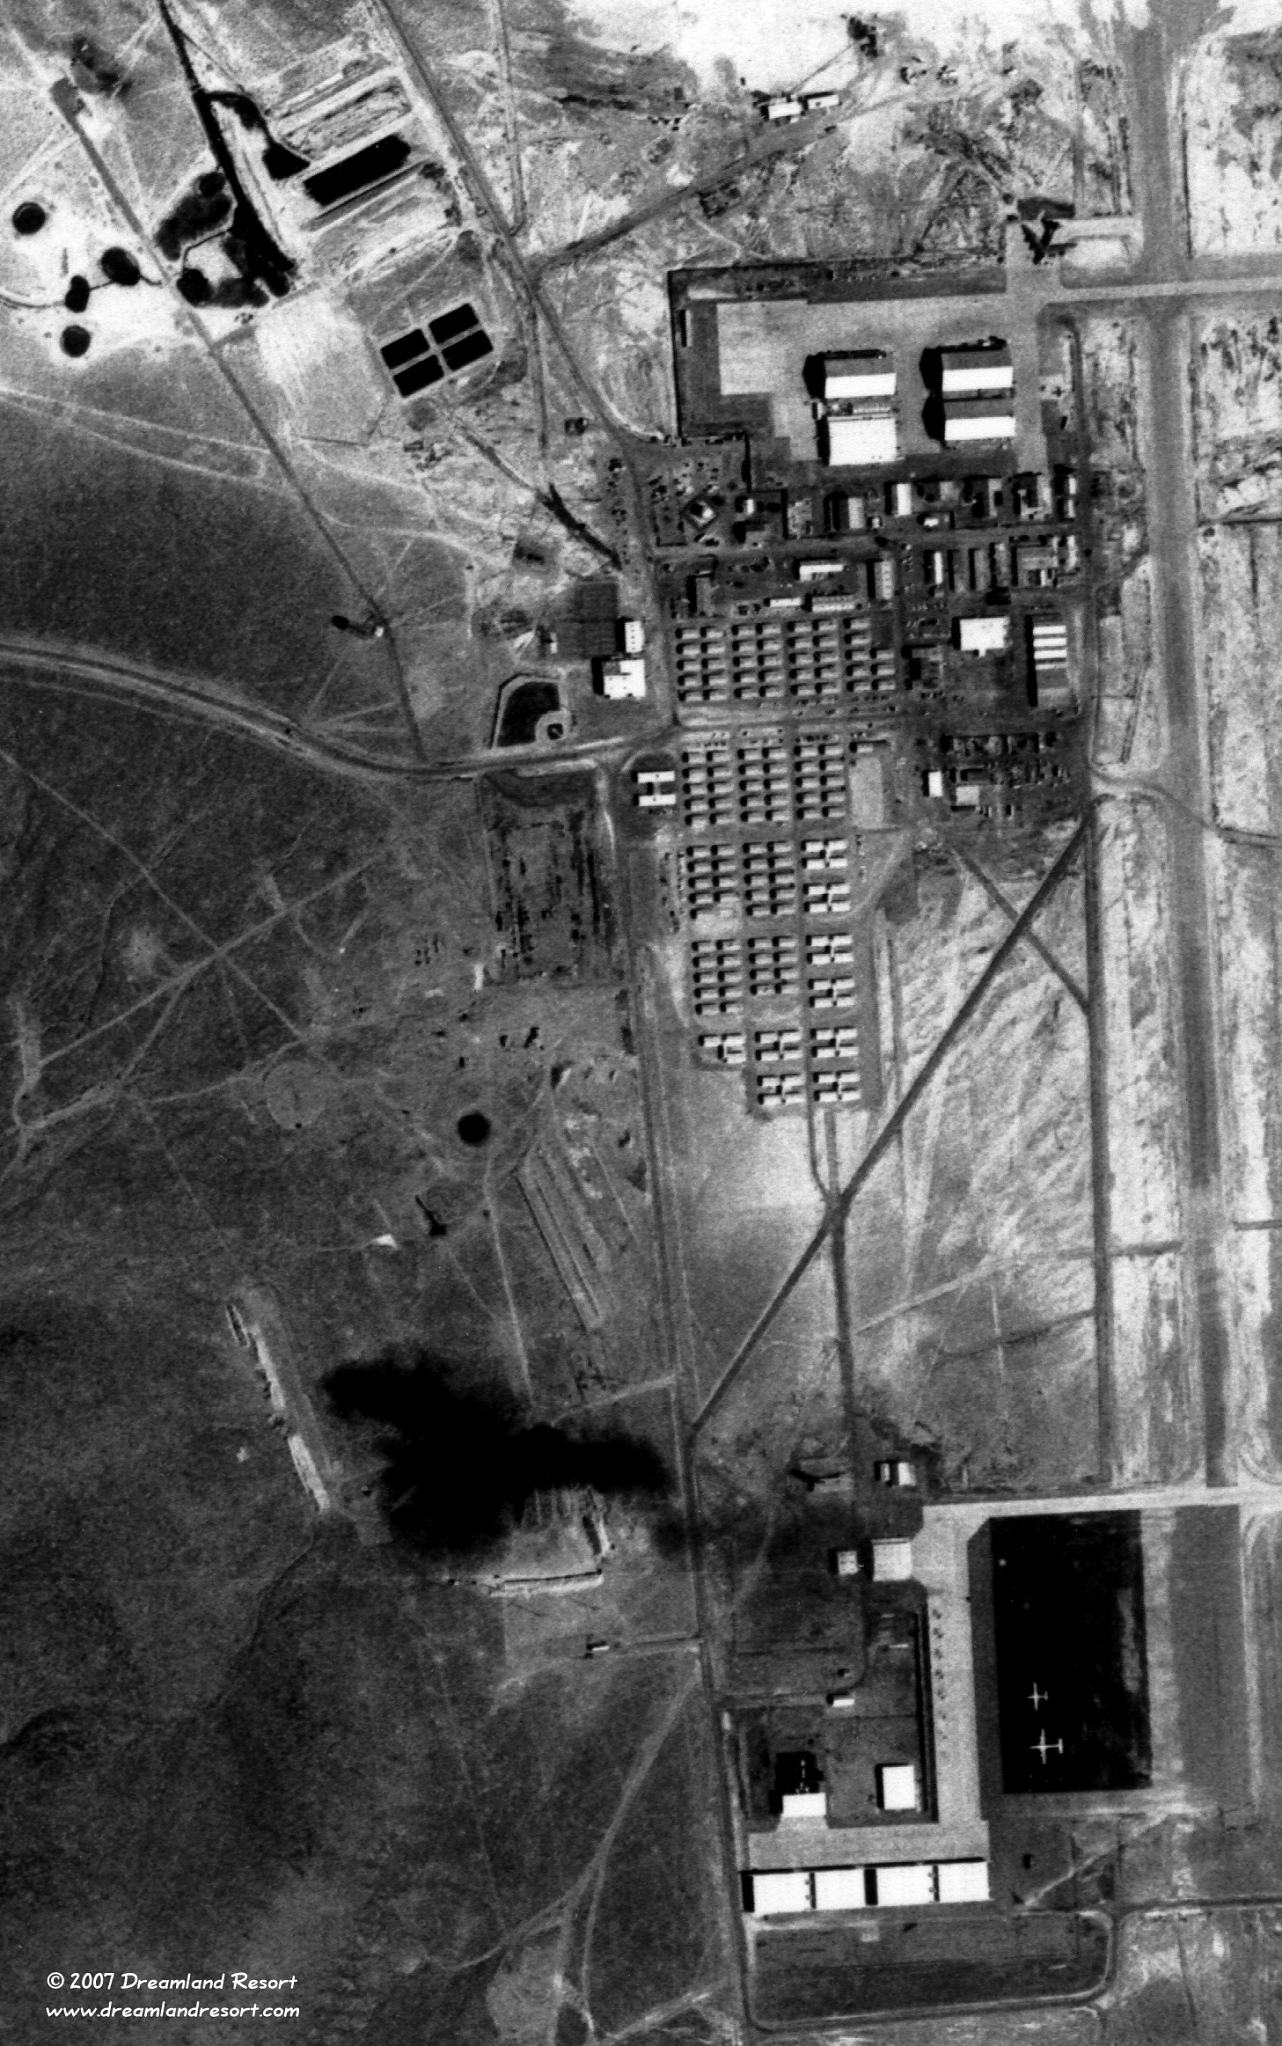 USGS aerial photos of Area 51 taken 8281968